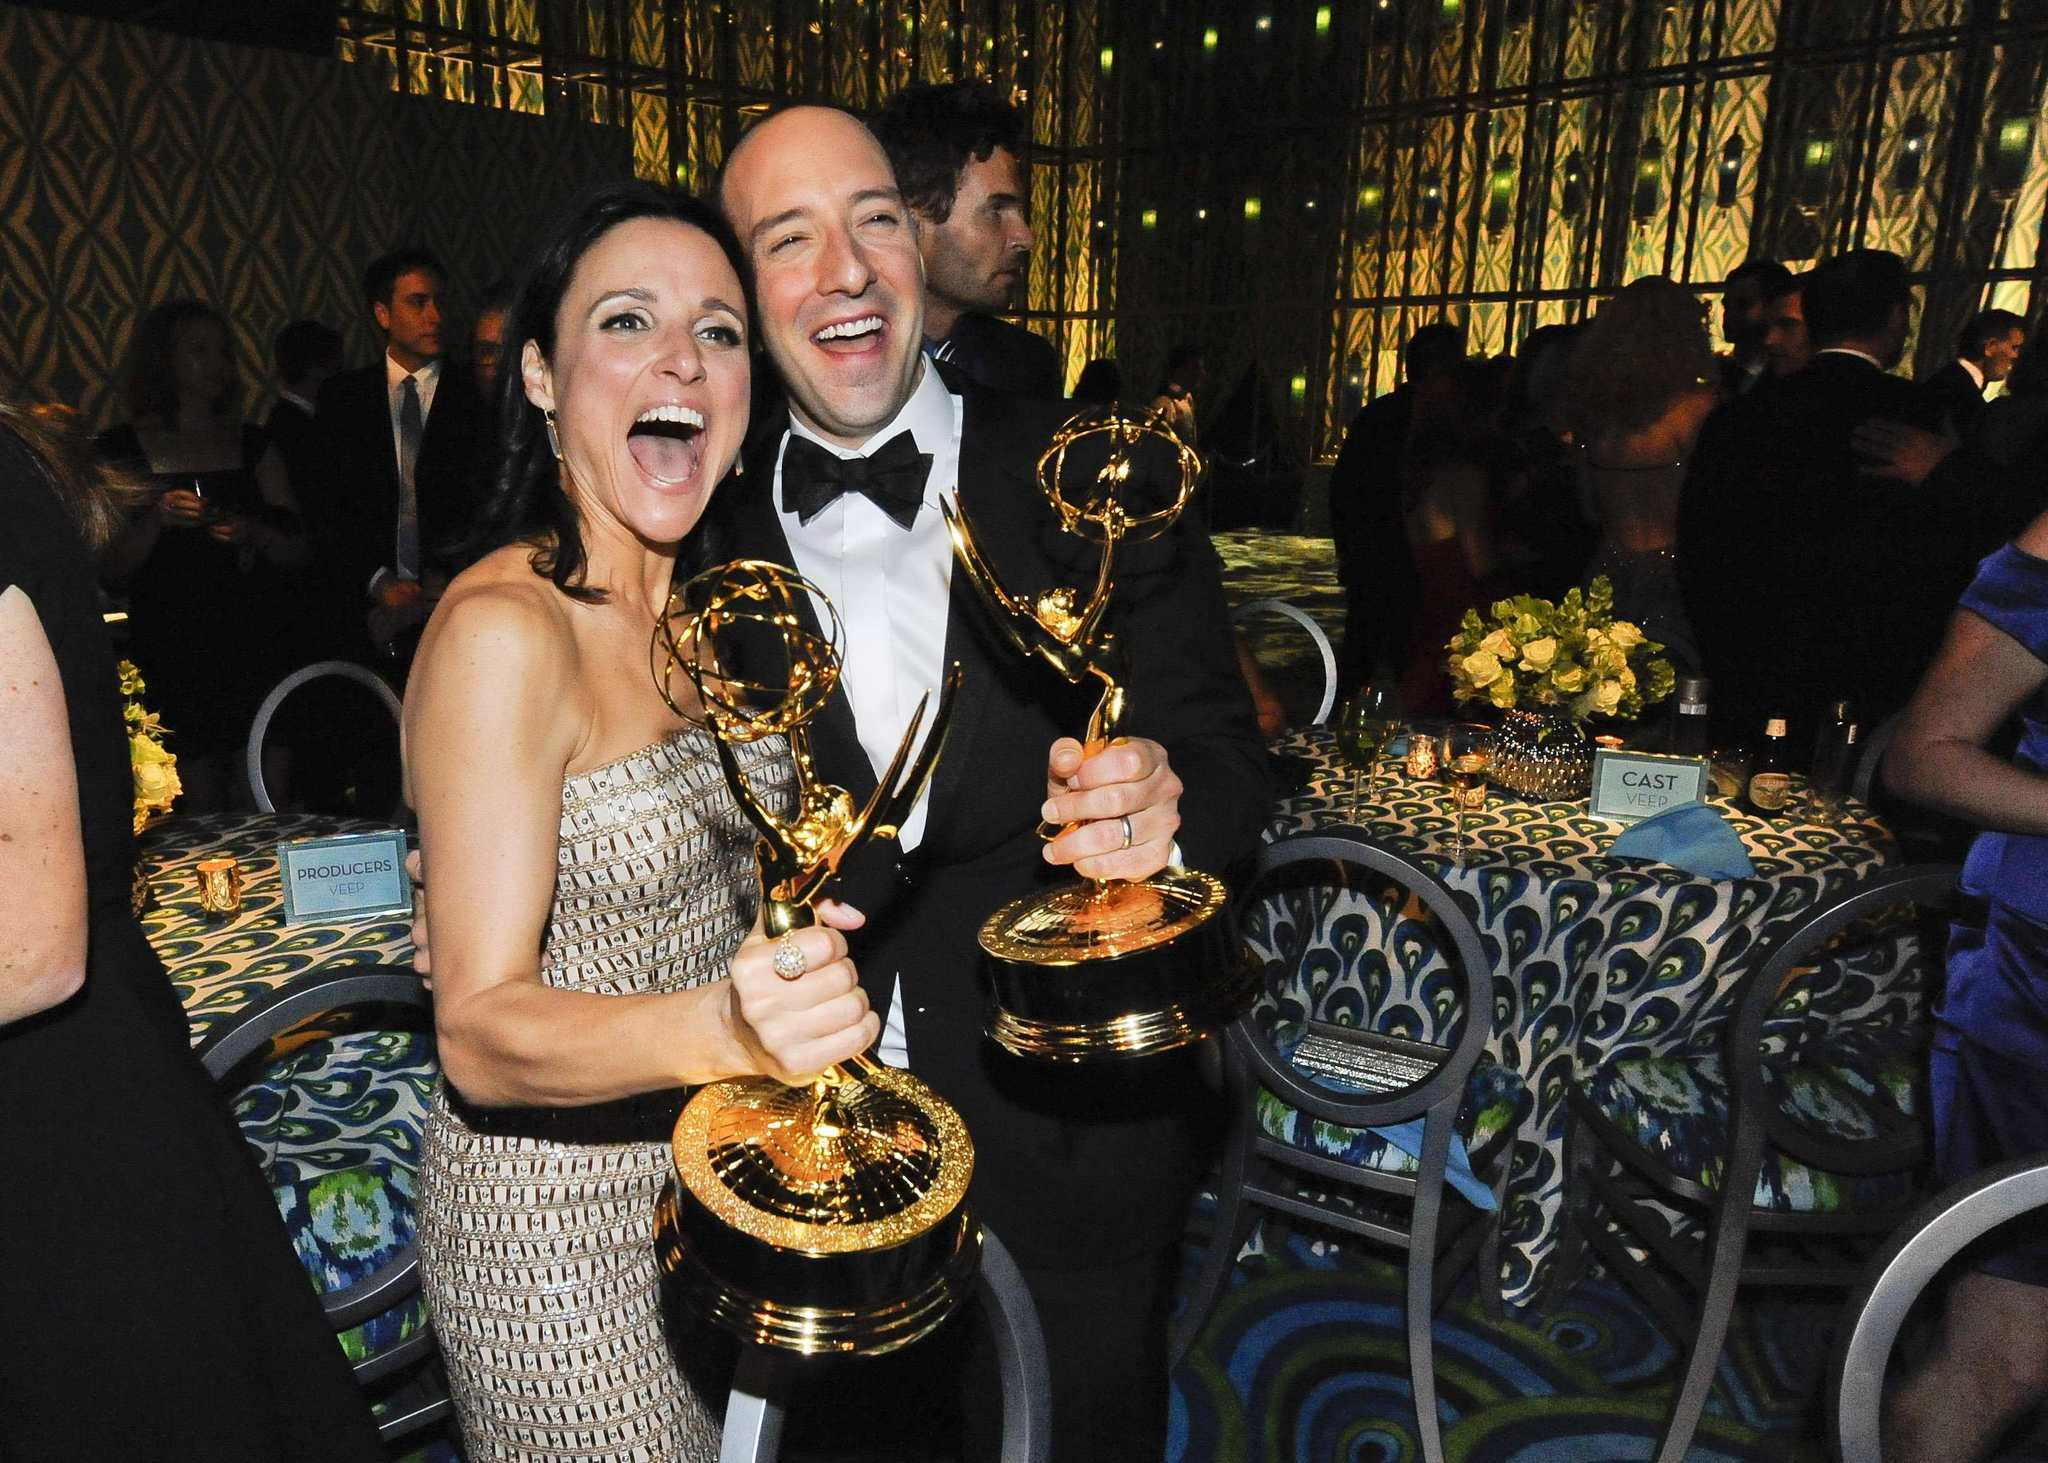 Actress Julia Louis-Dreyfus (L), winner of the Best Actress in a Comedy Series, and actor Tony Hale, winner of the Best Supporting Actor in a Comedy Series, celebrate at the 65th Primetime Emmy Awards HBO after party in West Hollywood September 22, 2013.